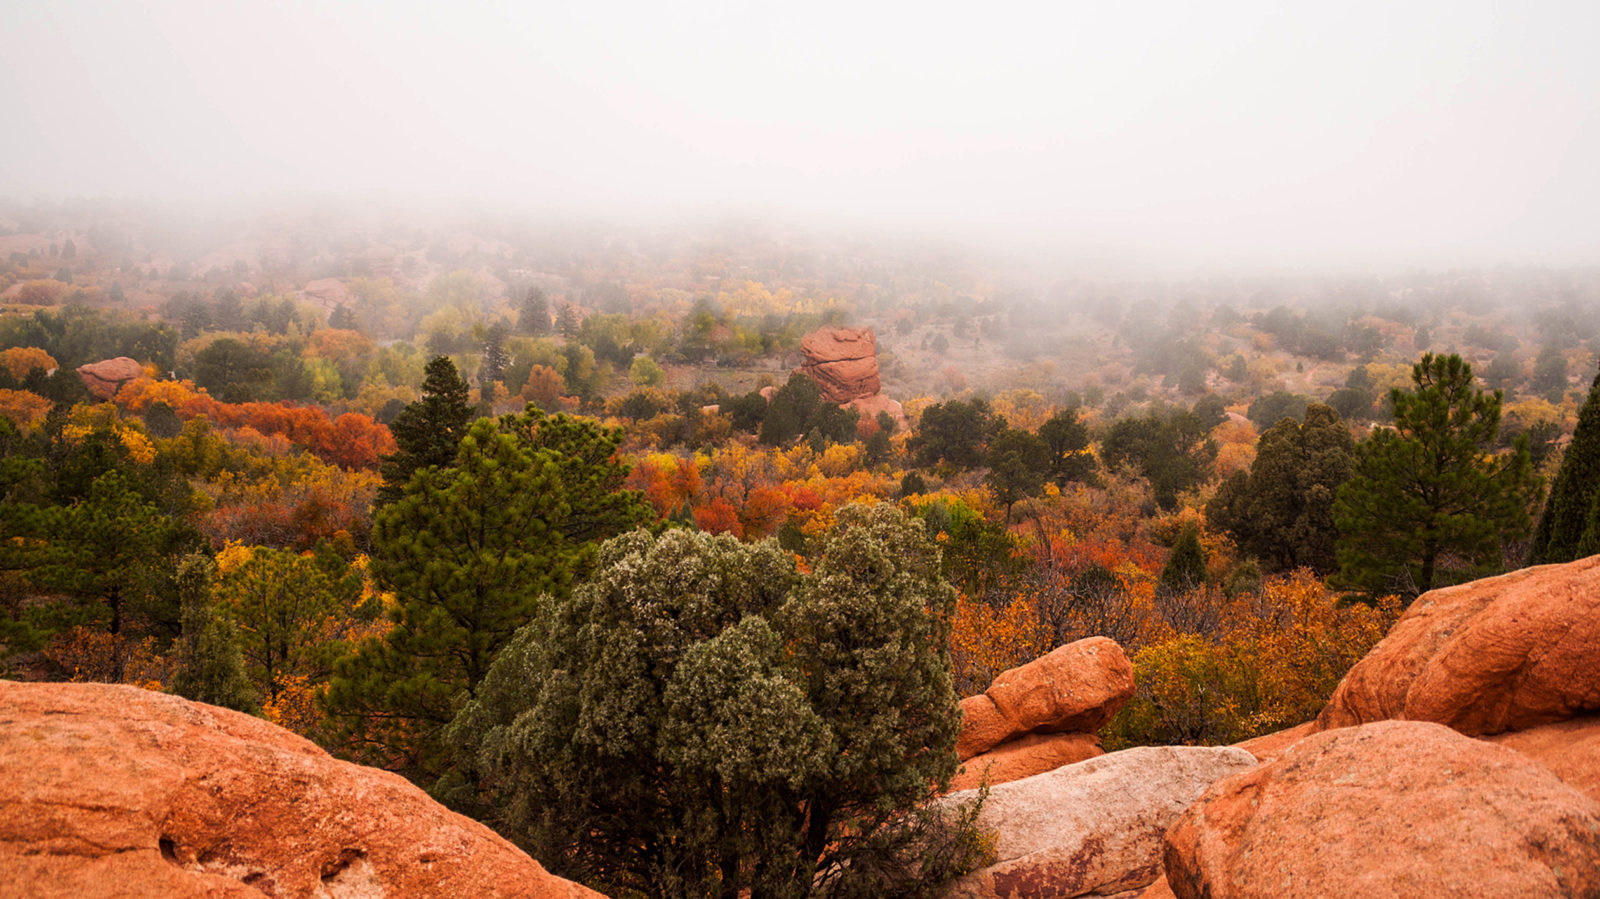 Fog Receding from Garden of the Gods